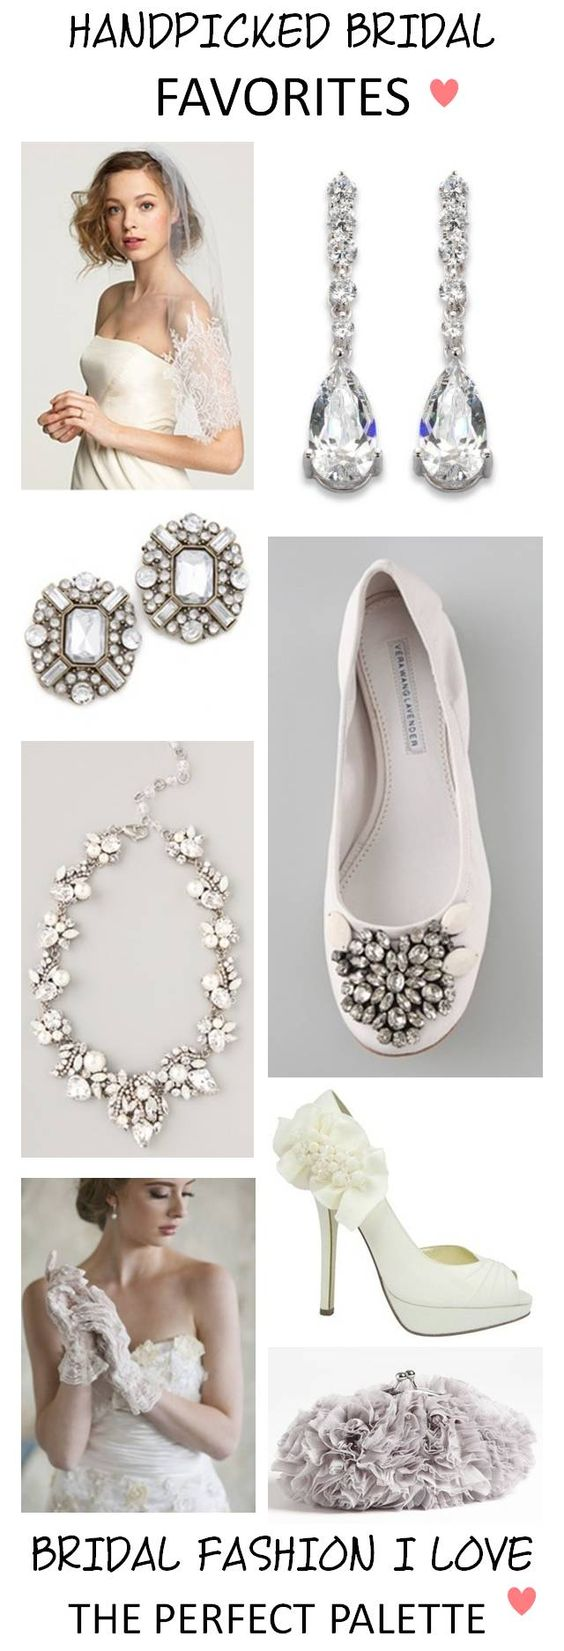 perfectpalette bridal jewelry accessories